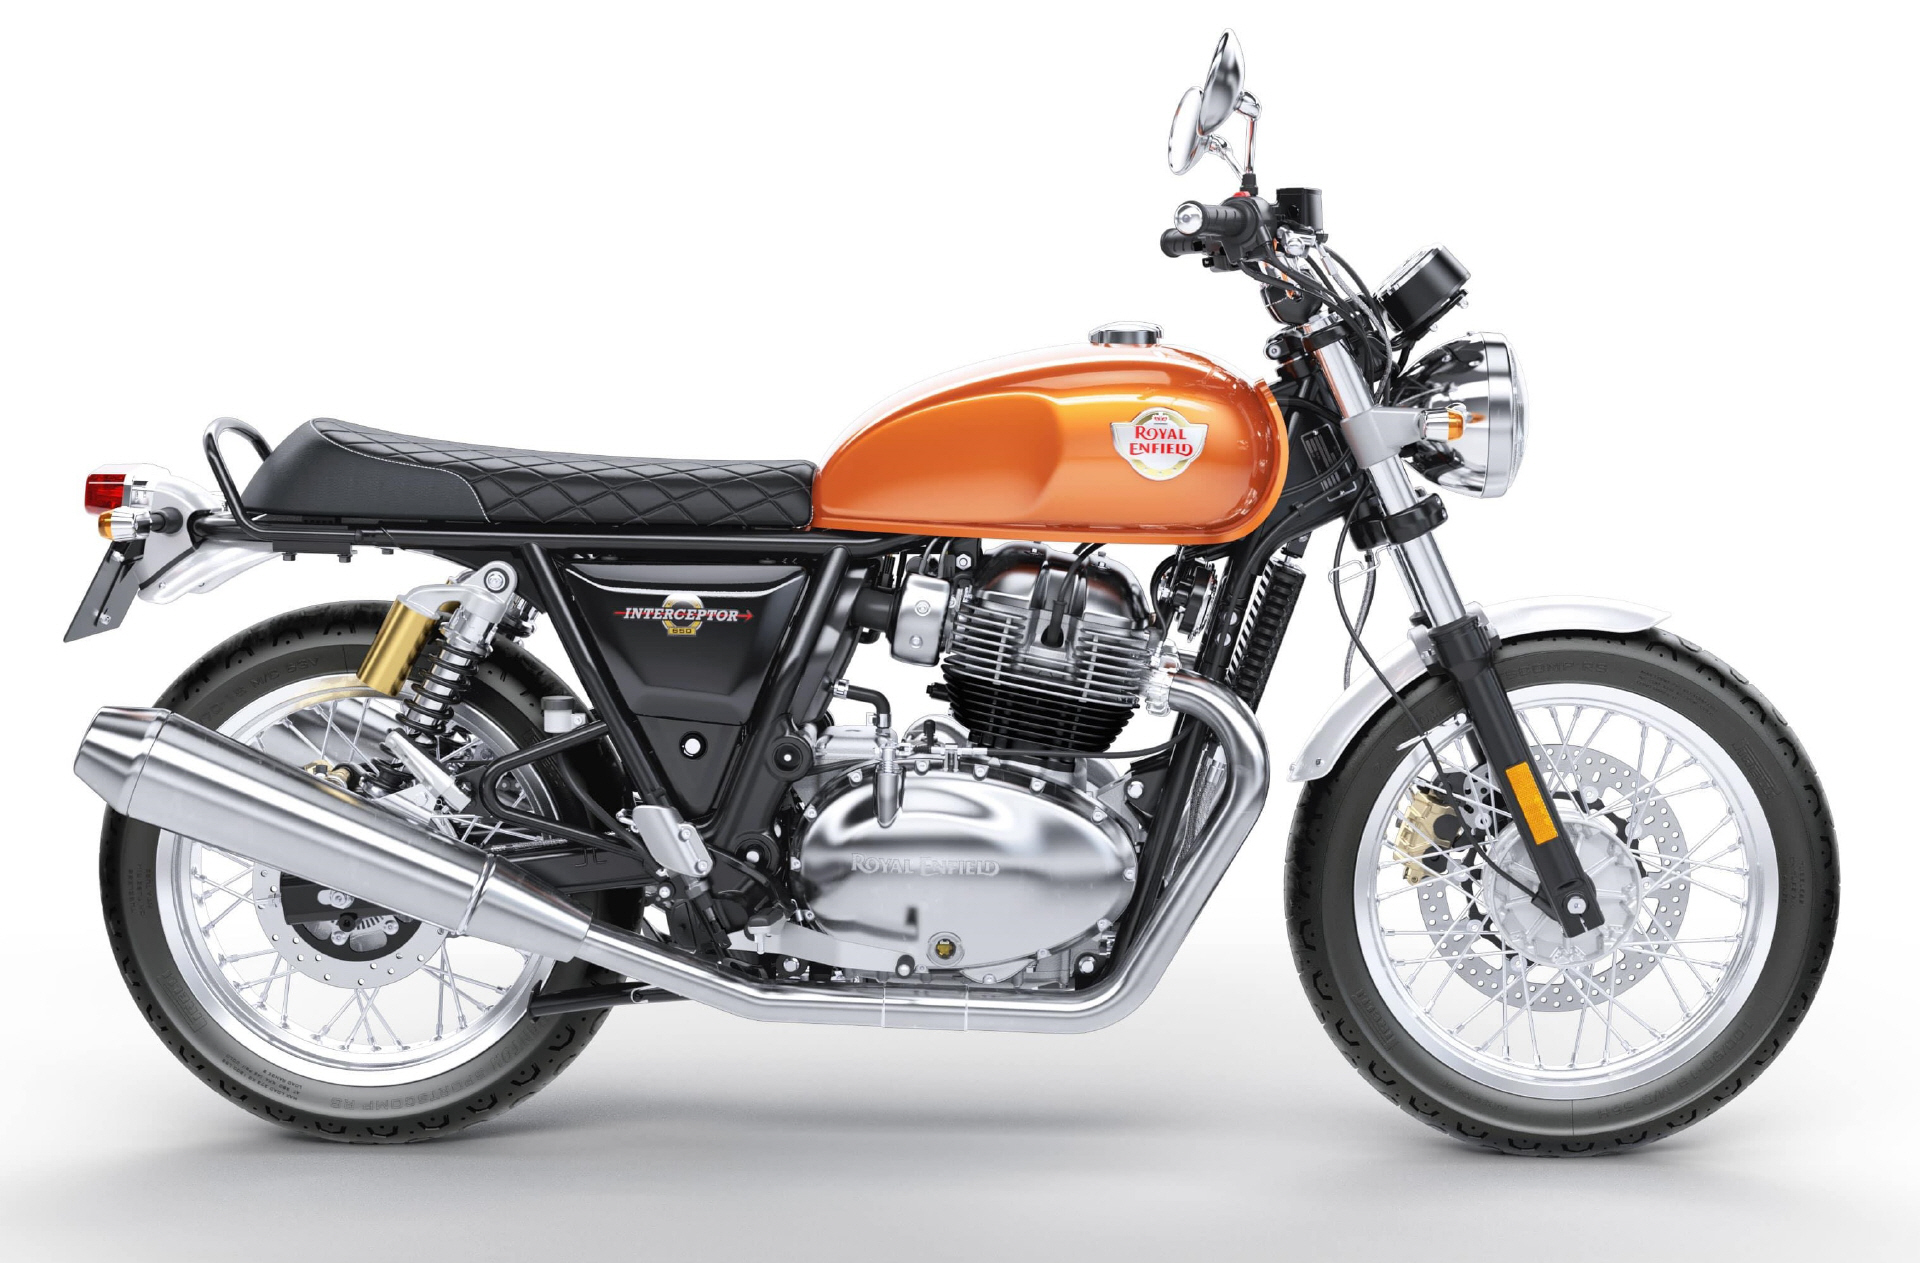 royalenfield_interceptor_twin_03jpg